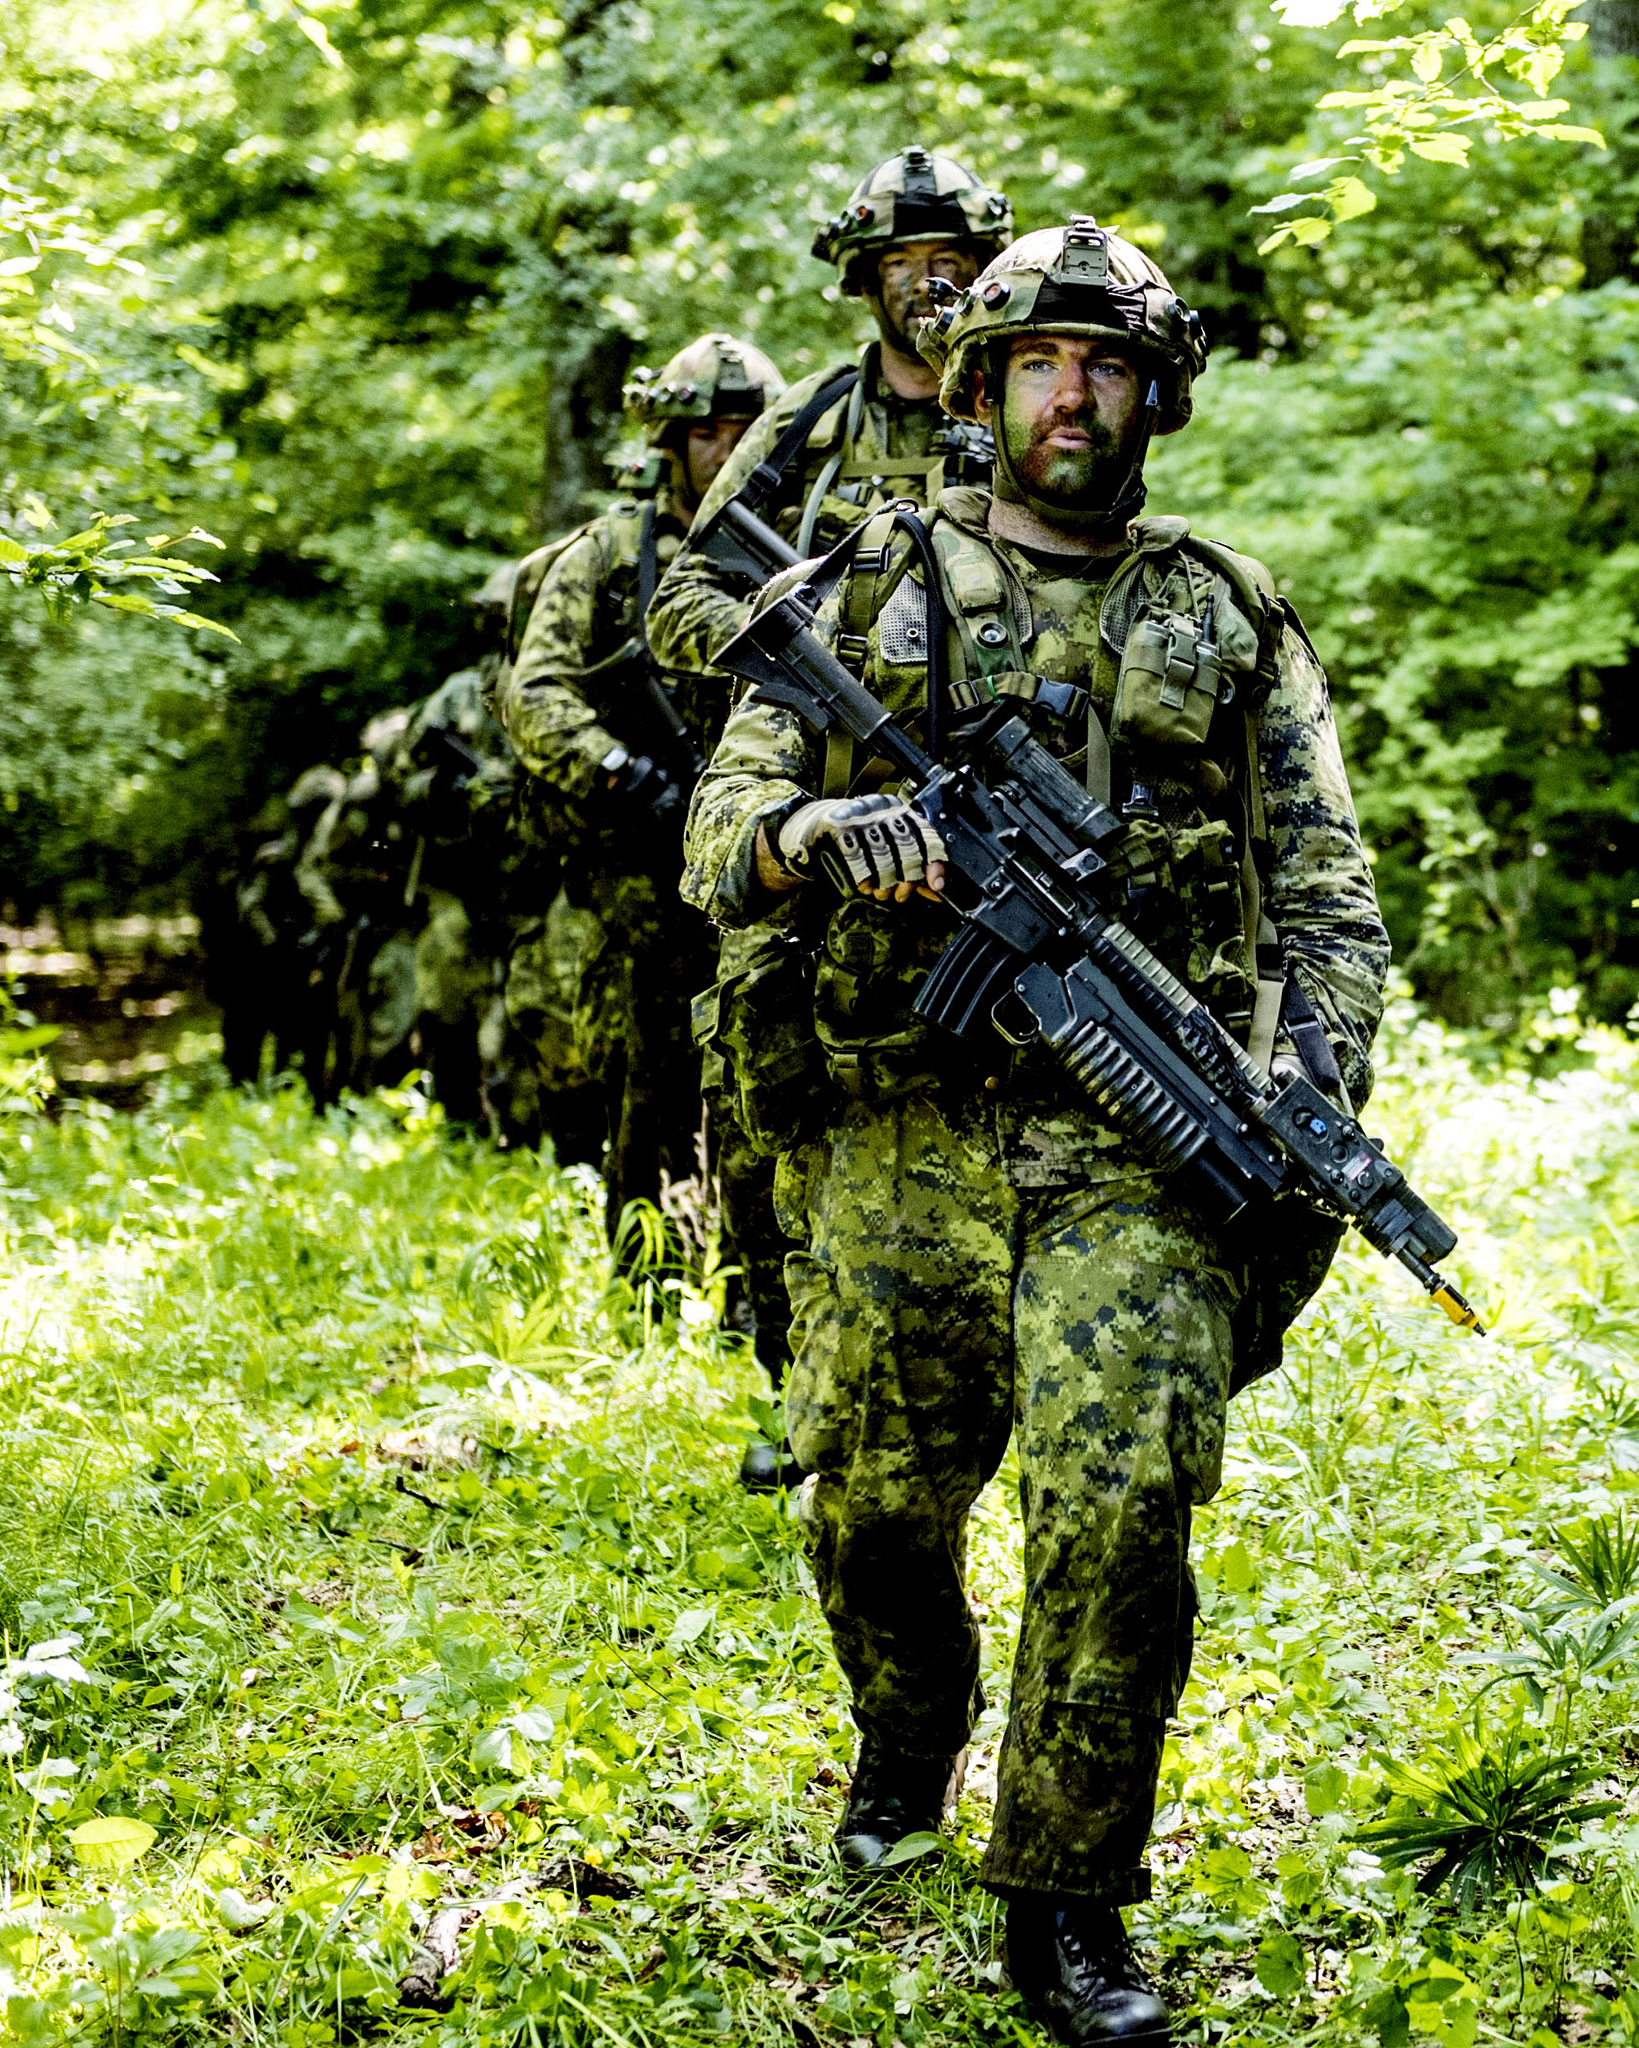 Cincu, Romania. 30 May 2015 – A soldier leads the march during Exercise SARMIS 15 during Operation REASSURANCE.